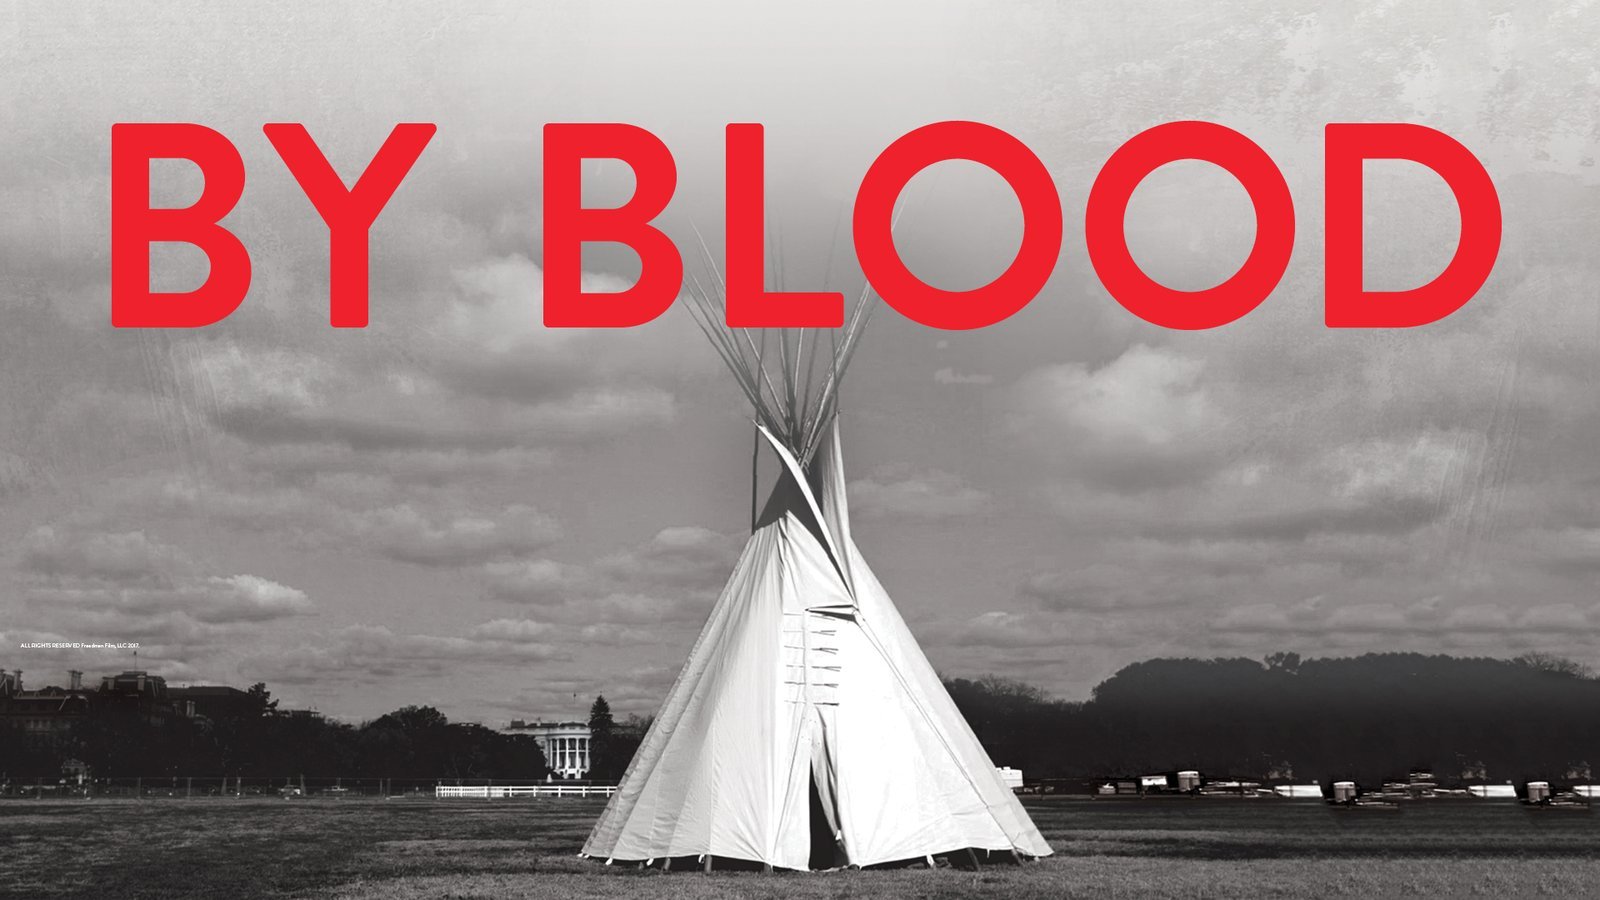 By Blood - Native American Men Fight for Cherokee Citizenship